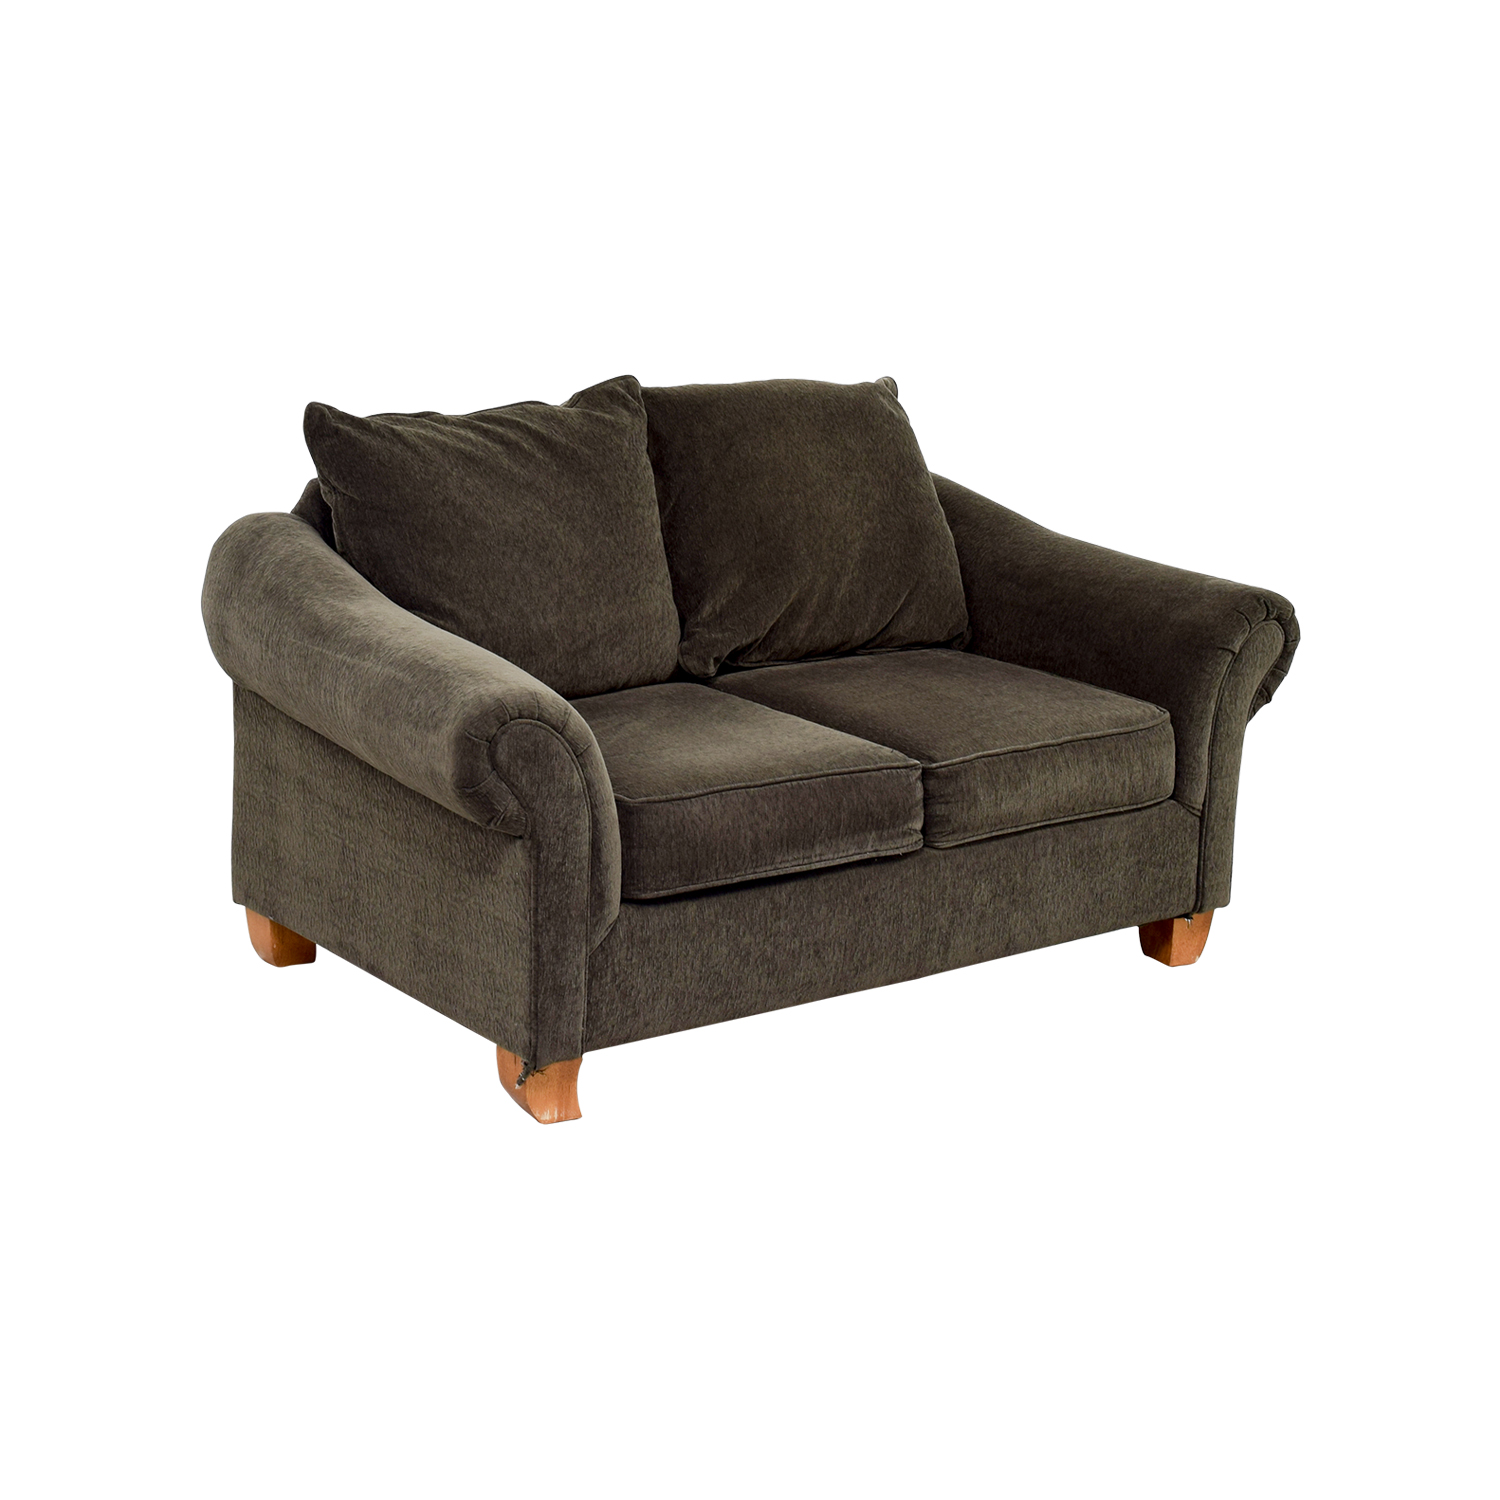 40 off star furniture star furniture brown curved arms for Star furniture